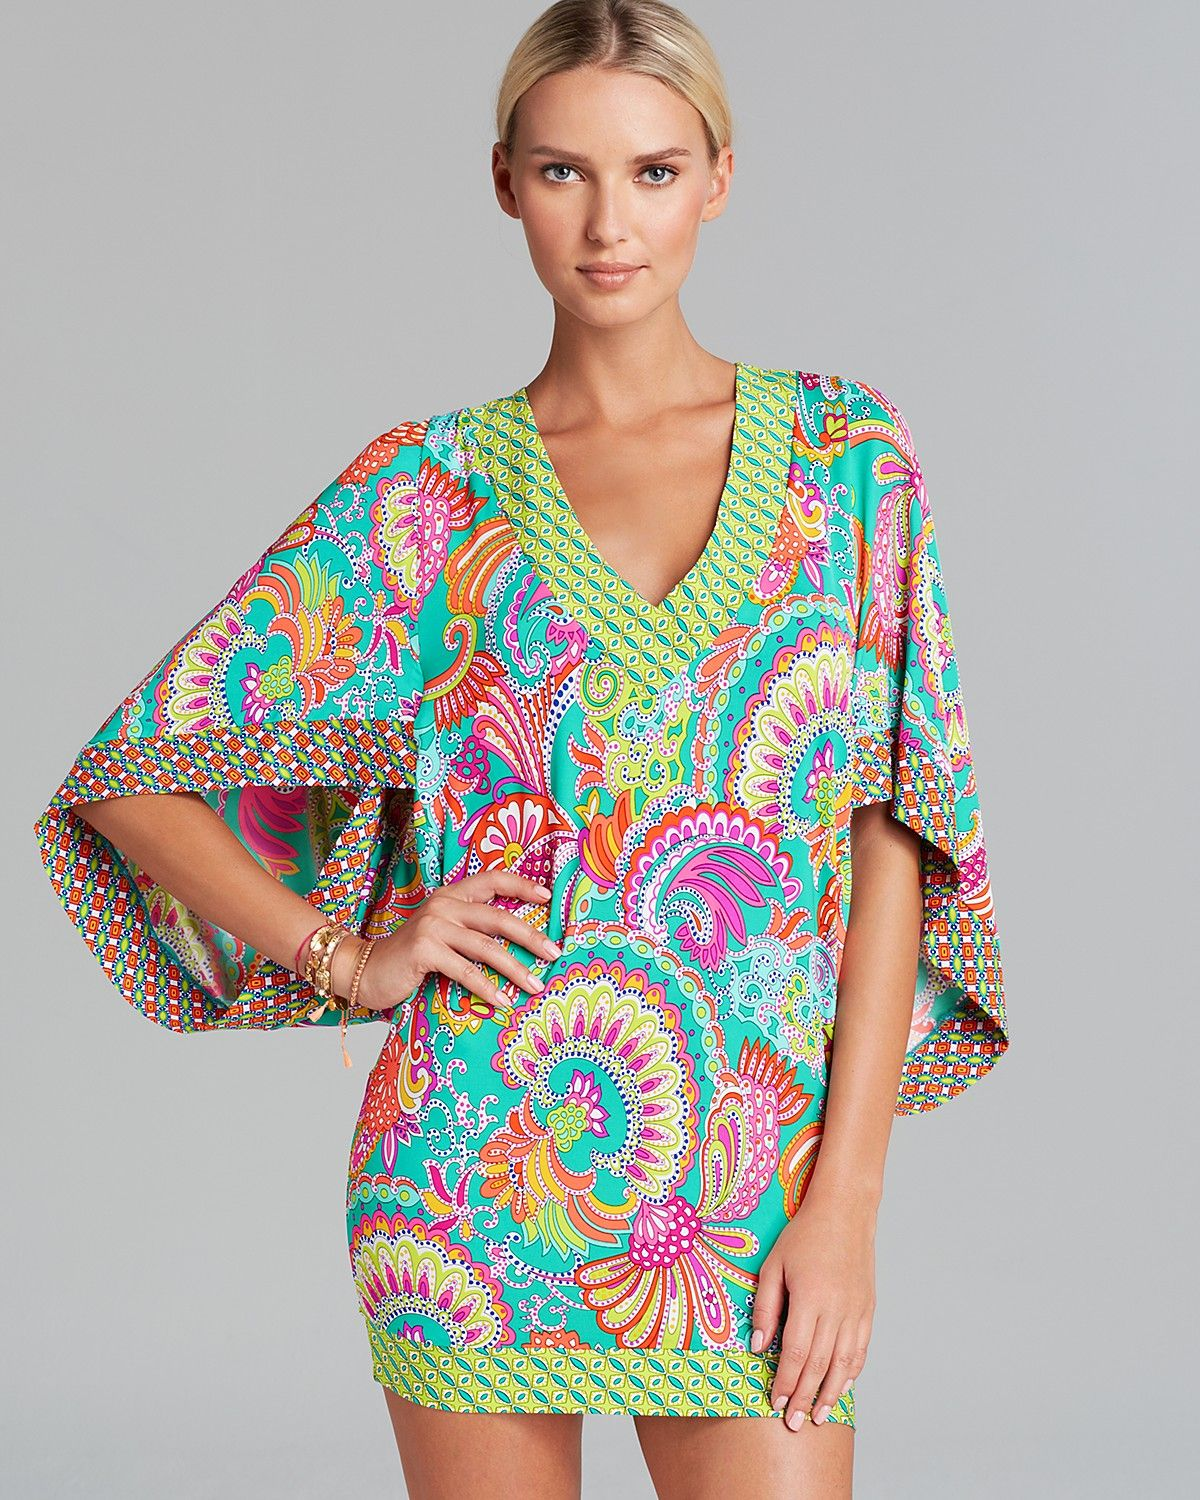 38dc3fe63e61b Pattern mixing perfection by Trina Turk. | sweet summertime ...